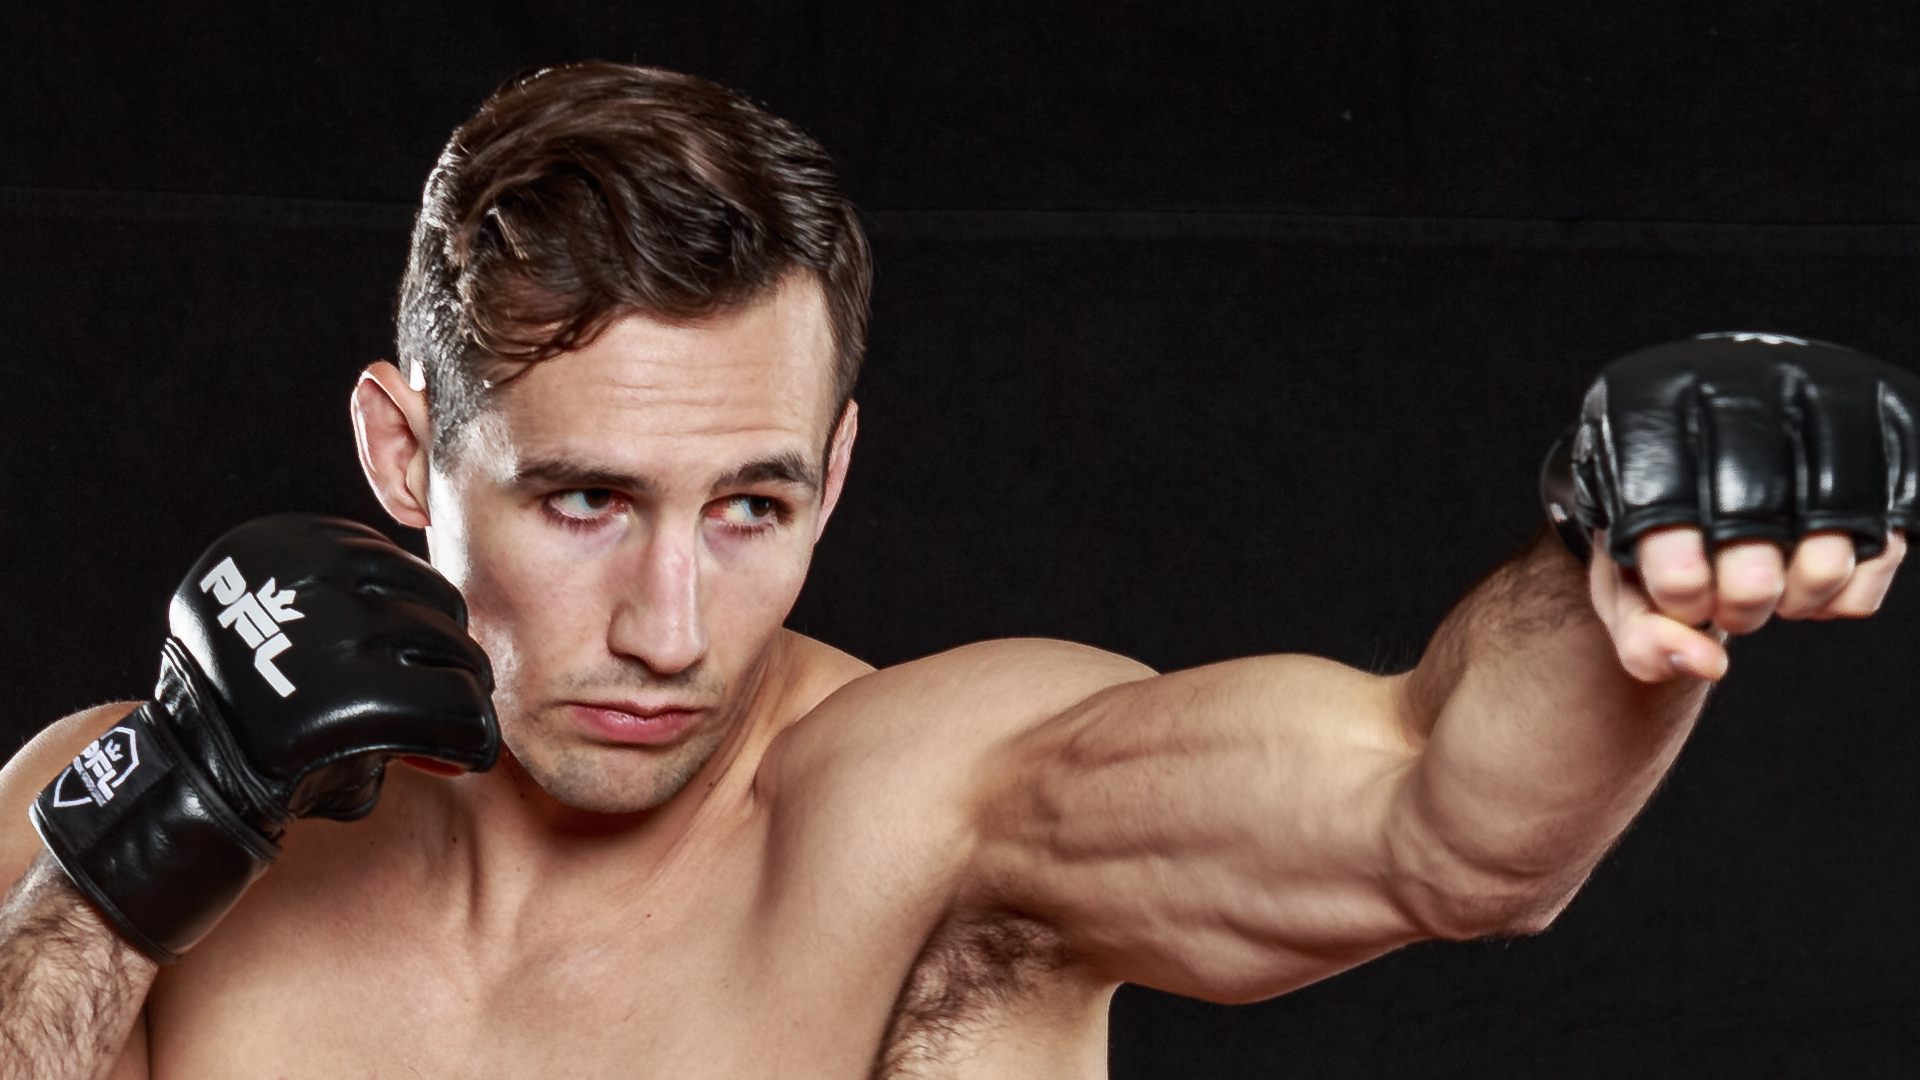 PFL 2 odds: Rory MacDonald massive betting favorite over Curtis Millender for April 29